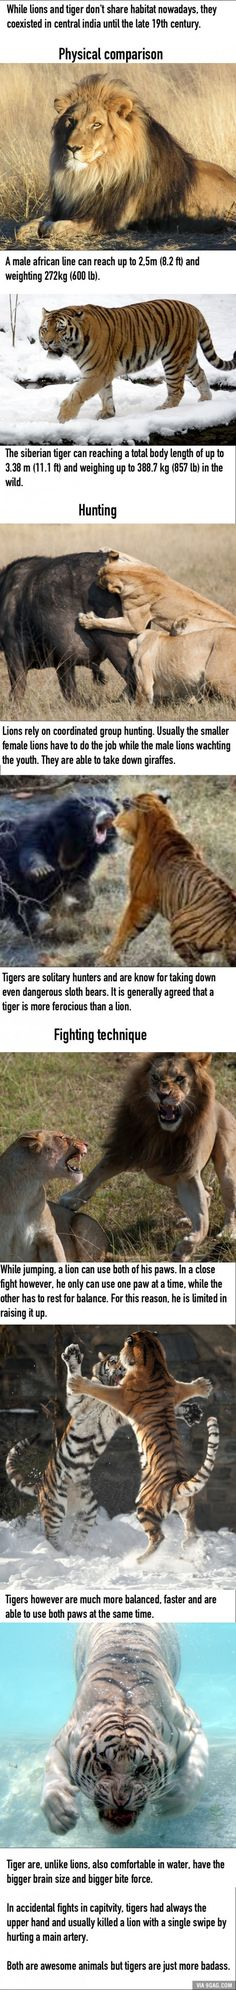 Tiger vs Lion, who would win?